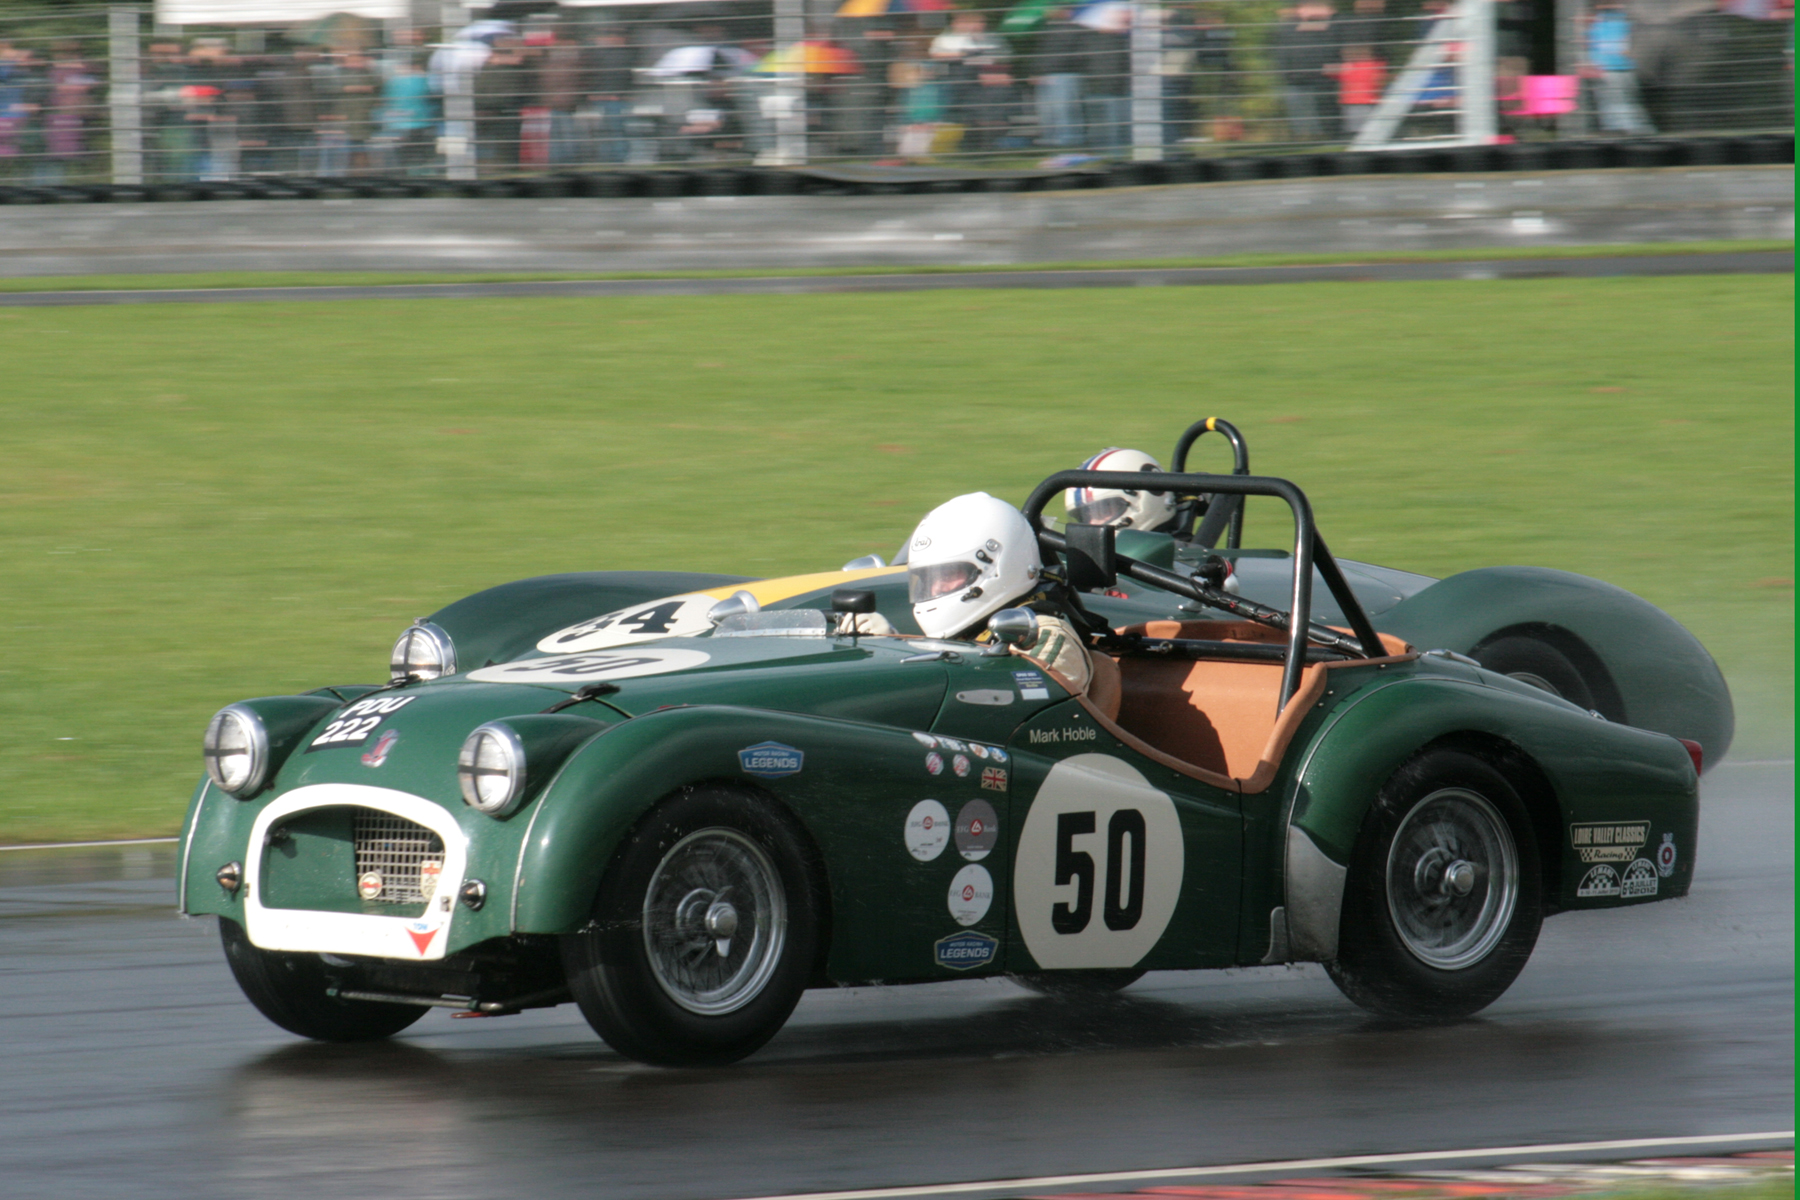 Mark Hoble in his TR2 being lapped by the winning Aston, but Mark won his race long battle with Paul Ziller in the other TR2 by just 2.5 seconds after 30 minutes of racing, winning his class in the process.                                                 Photo - John Turner